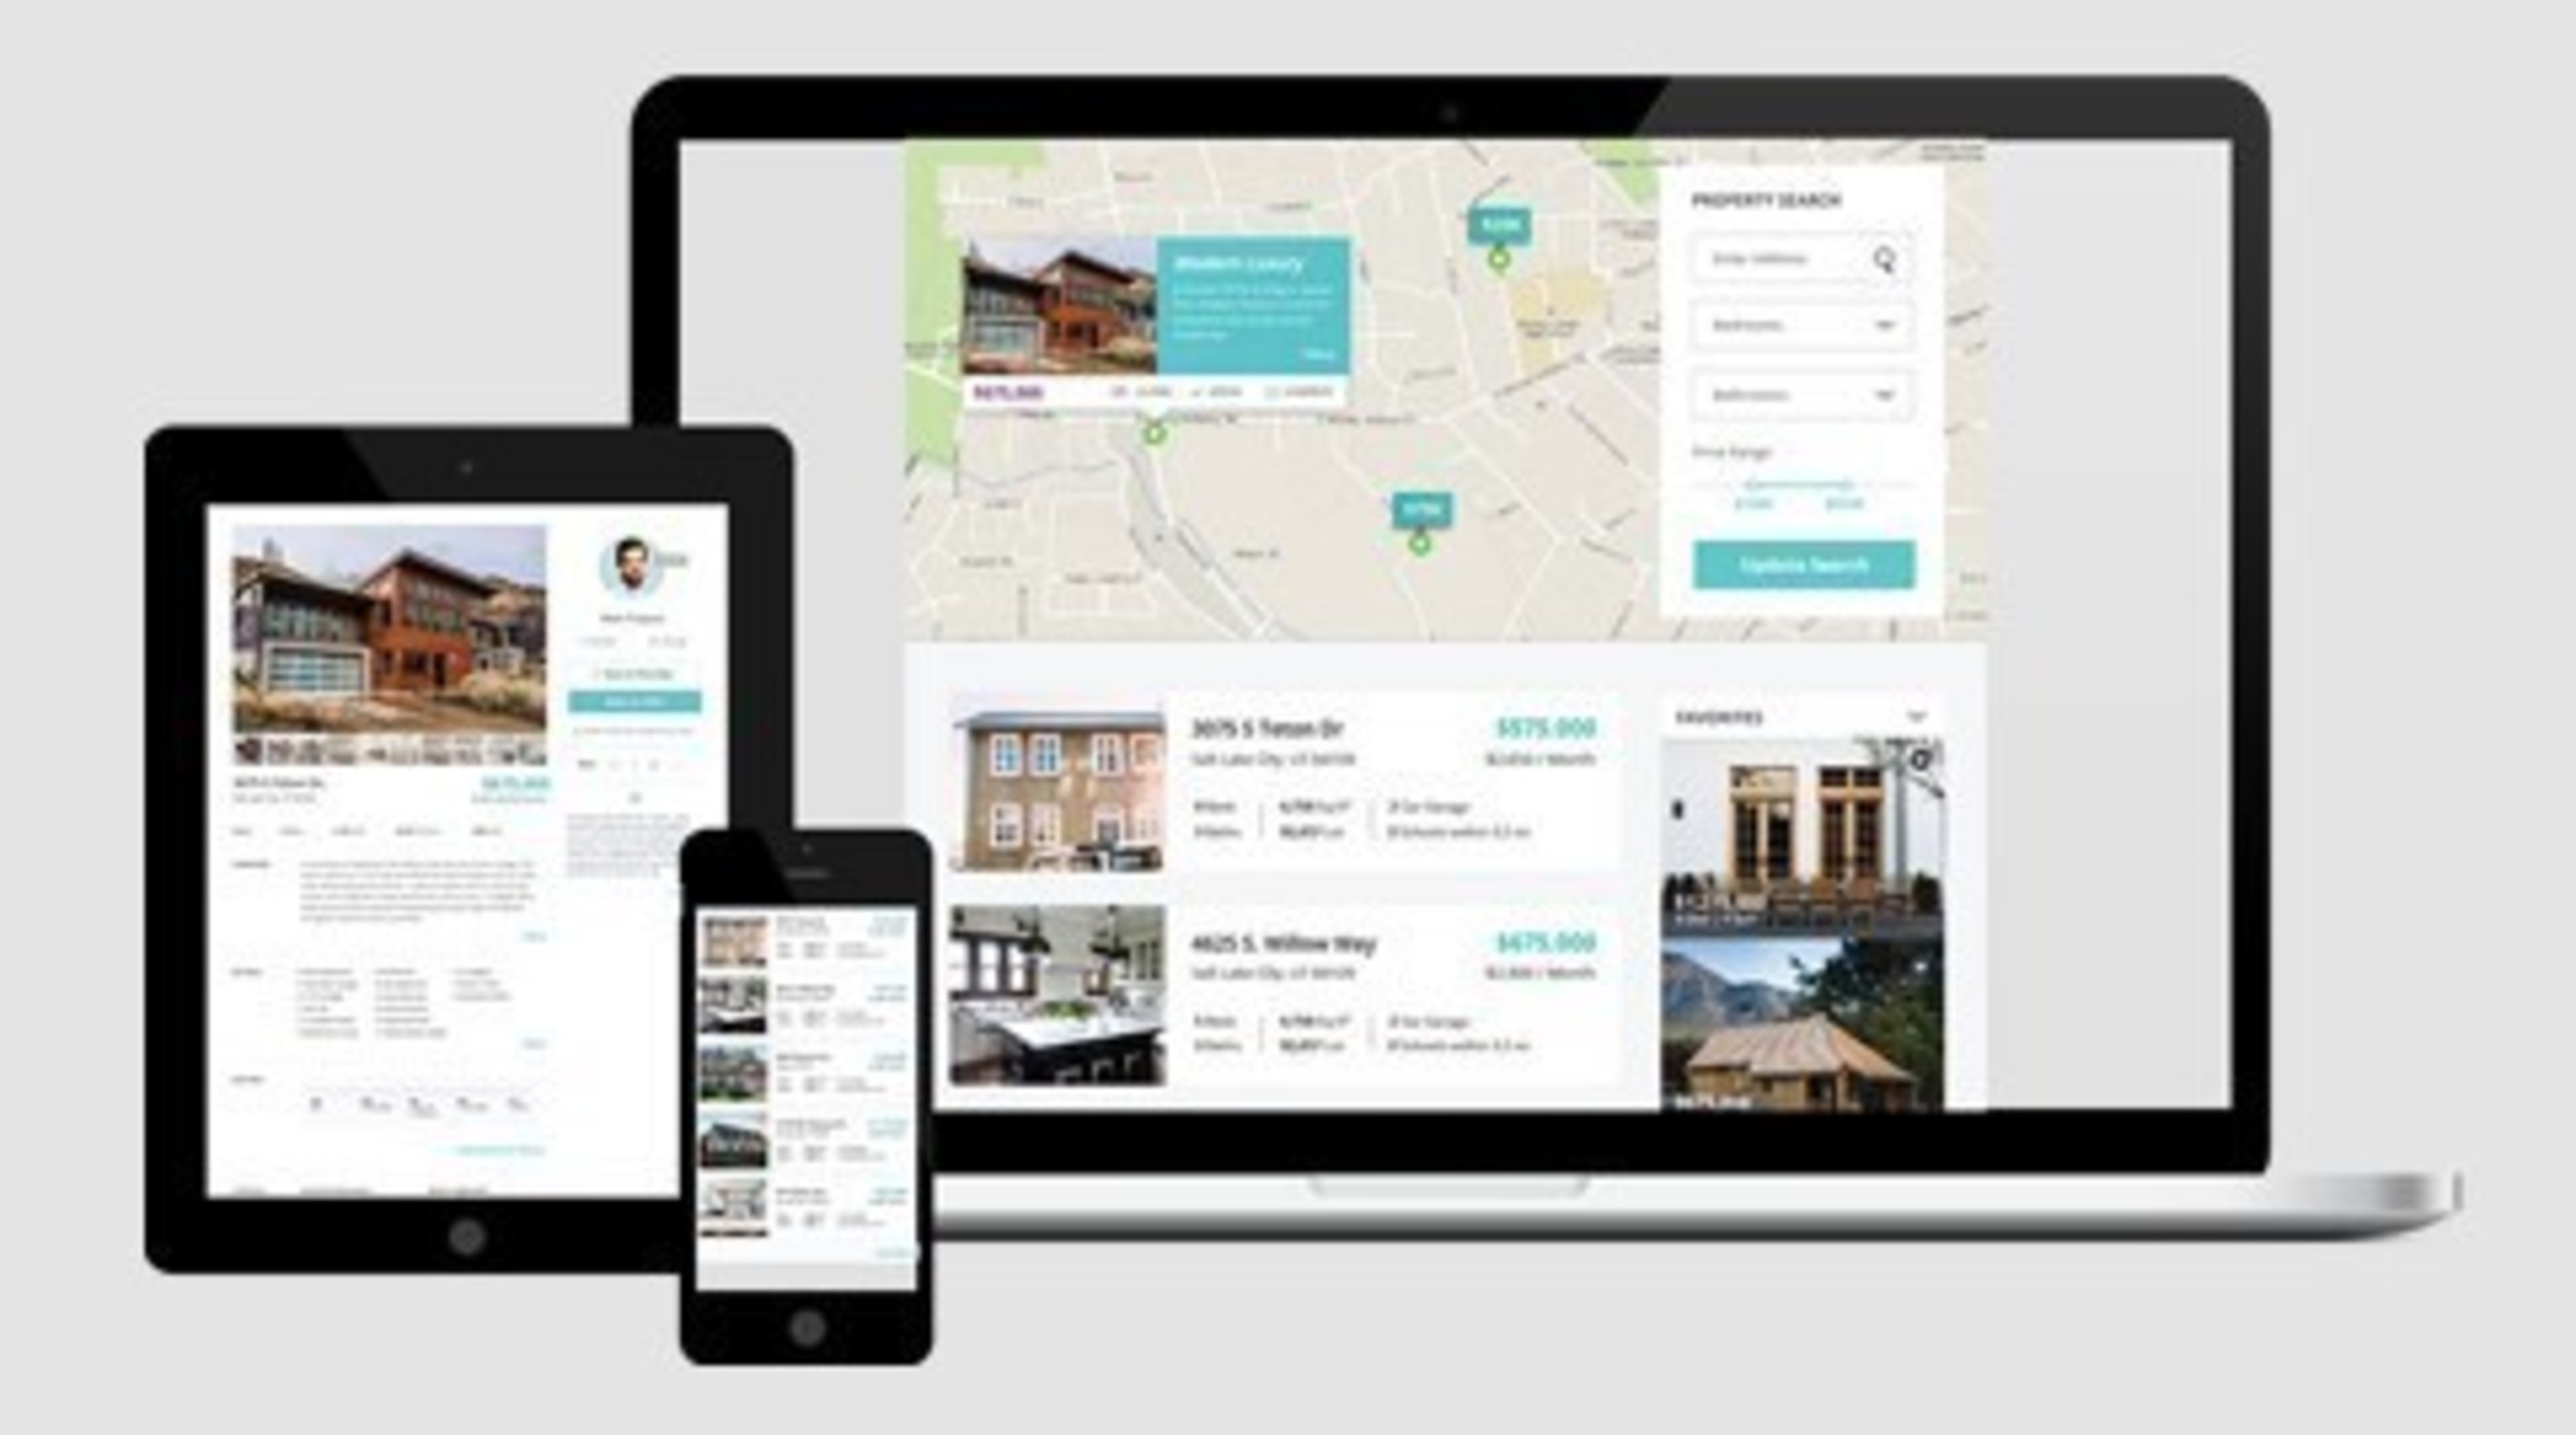 Peak Ventures Announces Seed Investment in Real Estate Tech Startup Homie